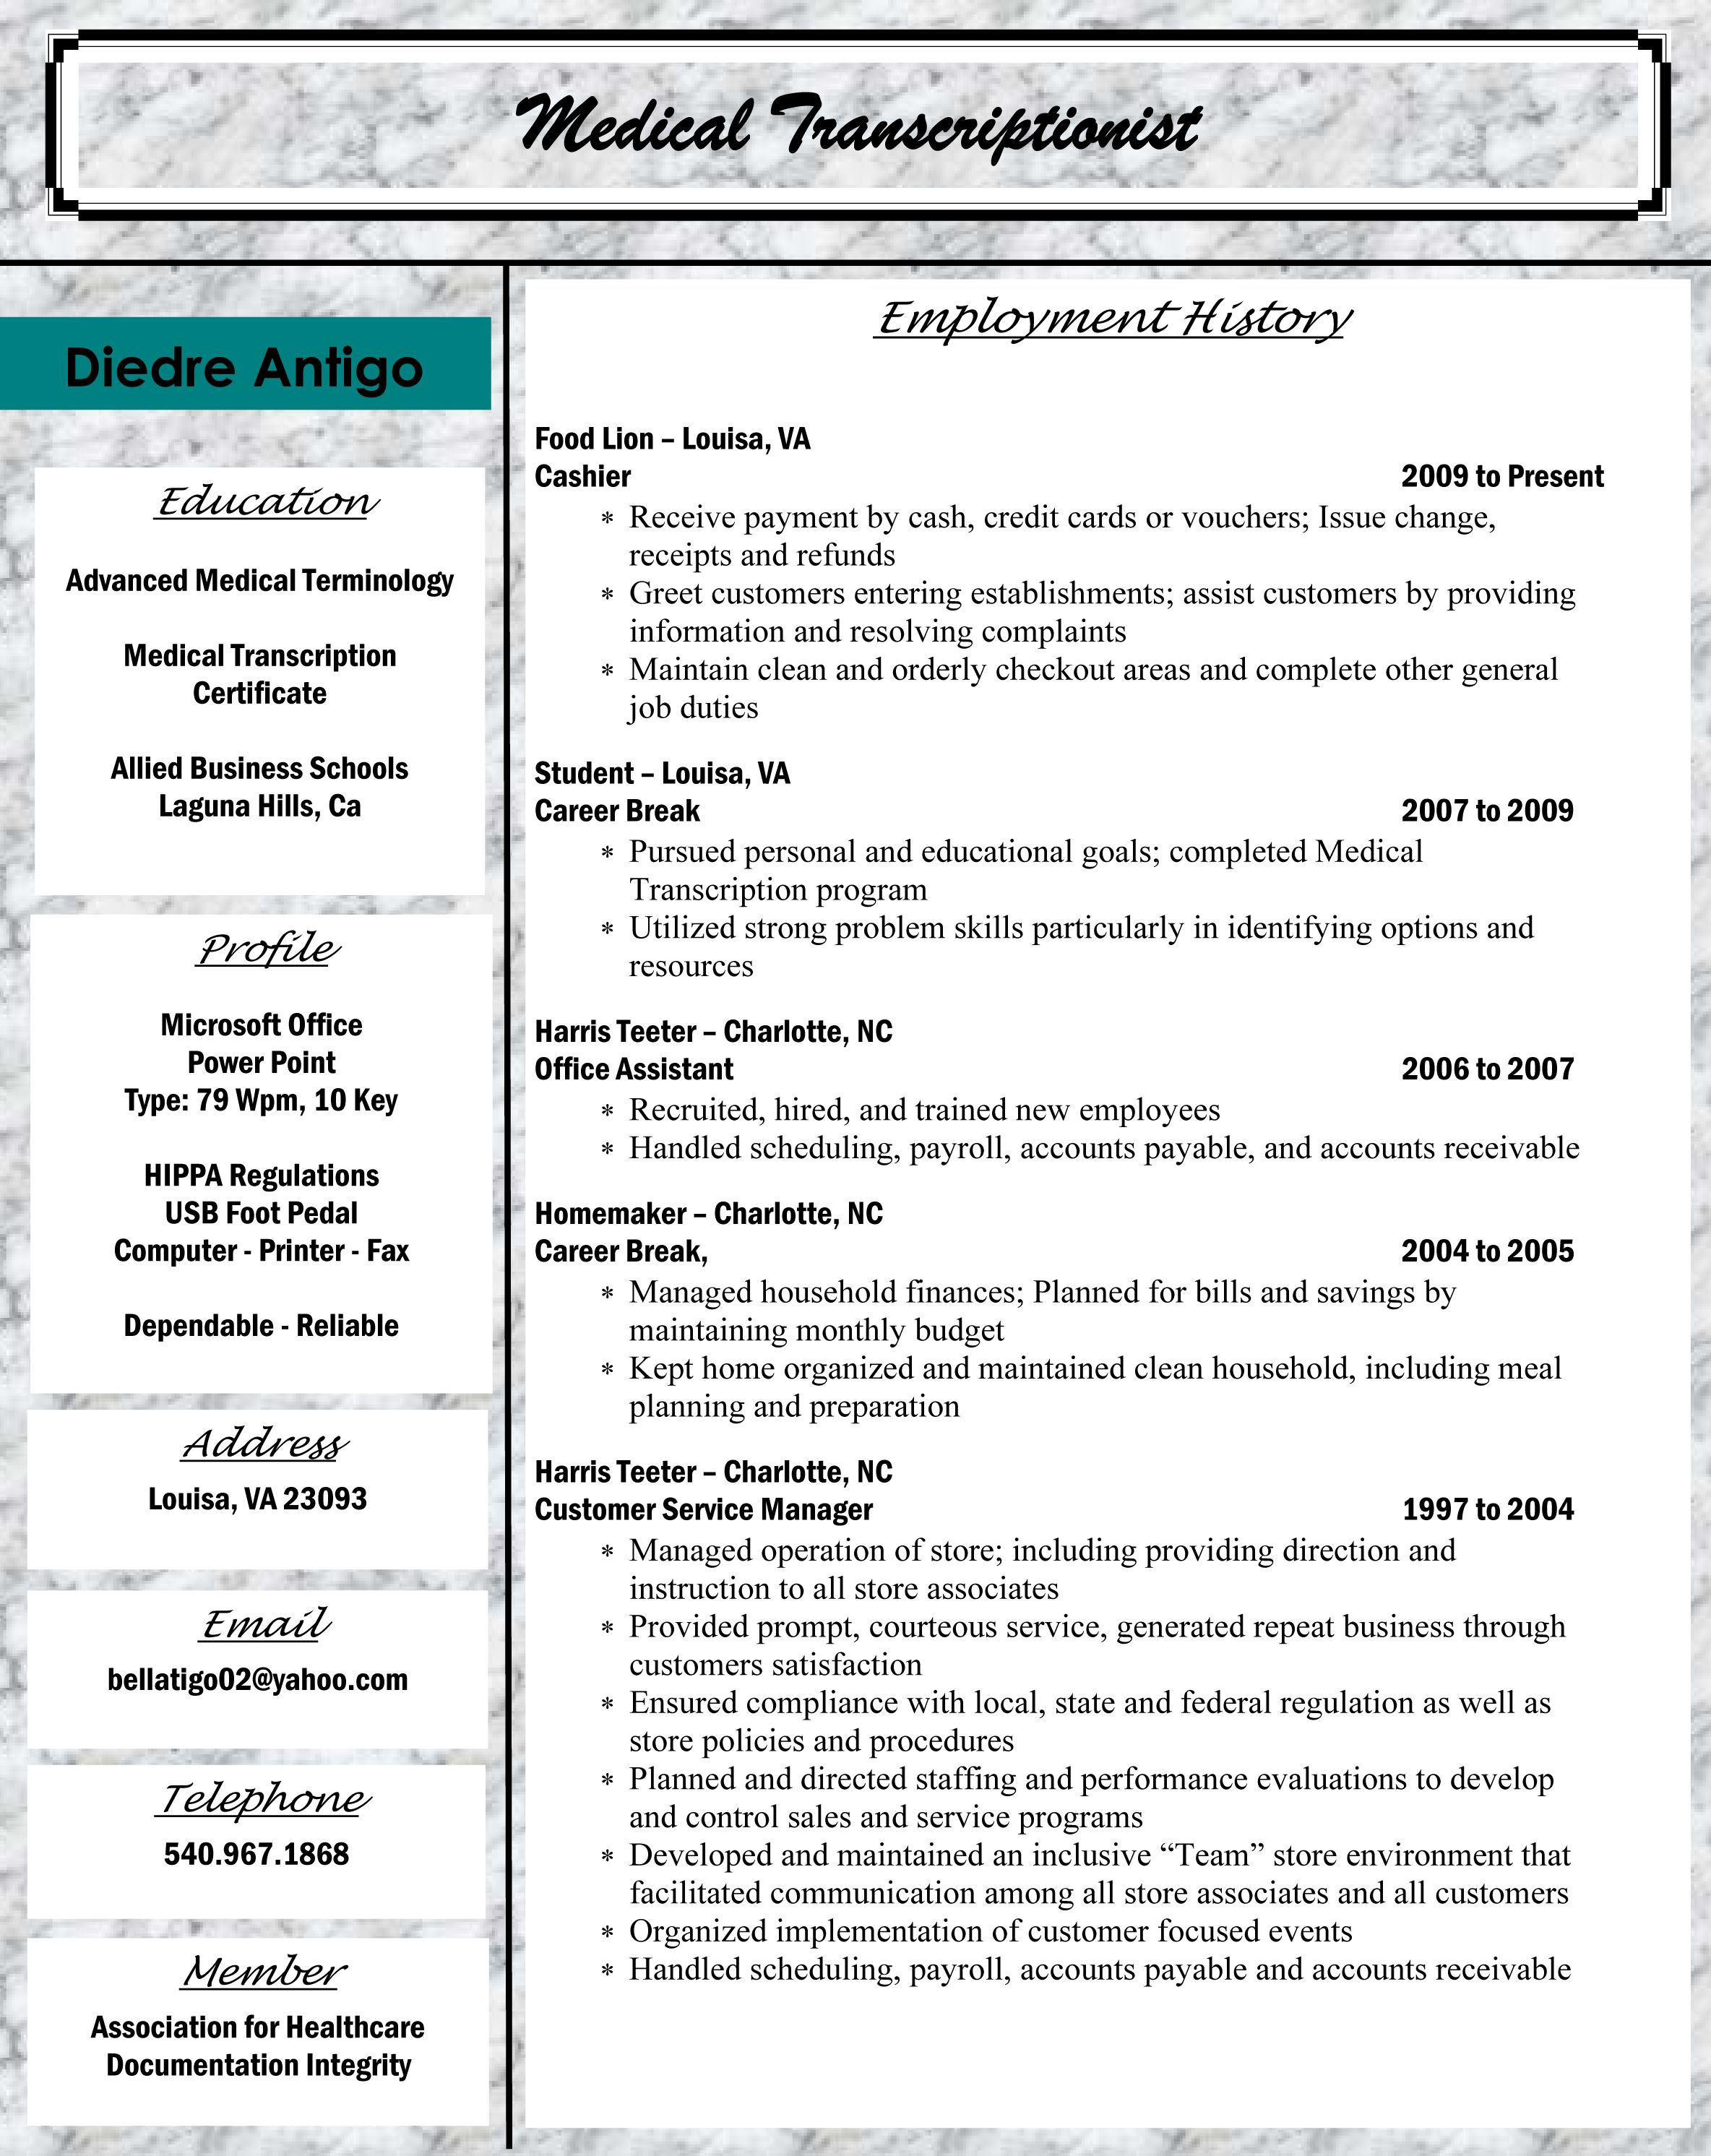 Resume For A Job Allied Student Diedre Antigo Medical Transcriptionist